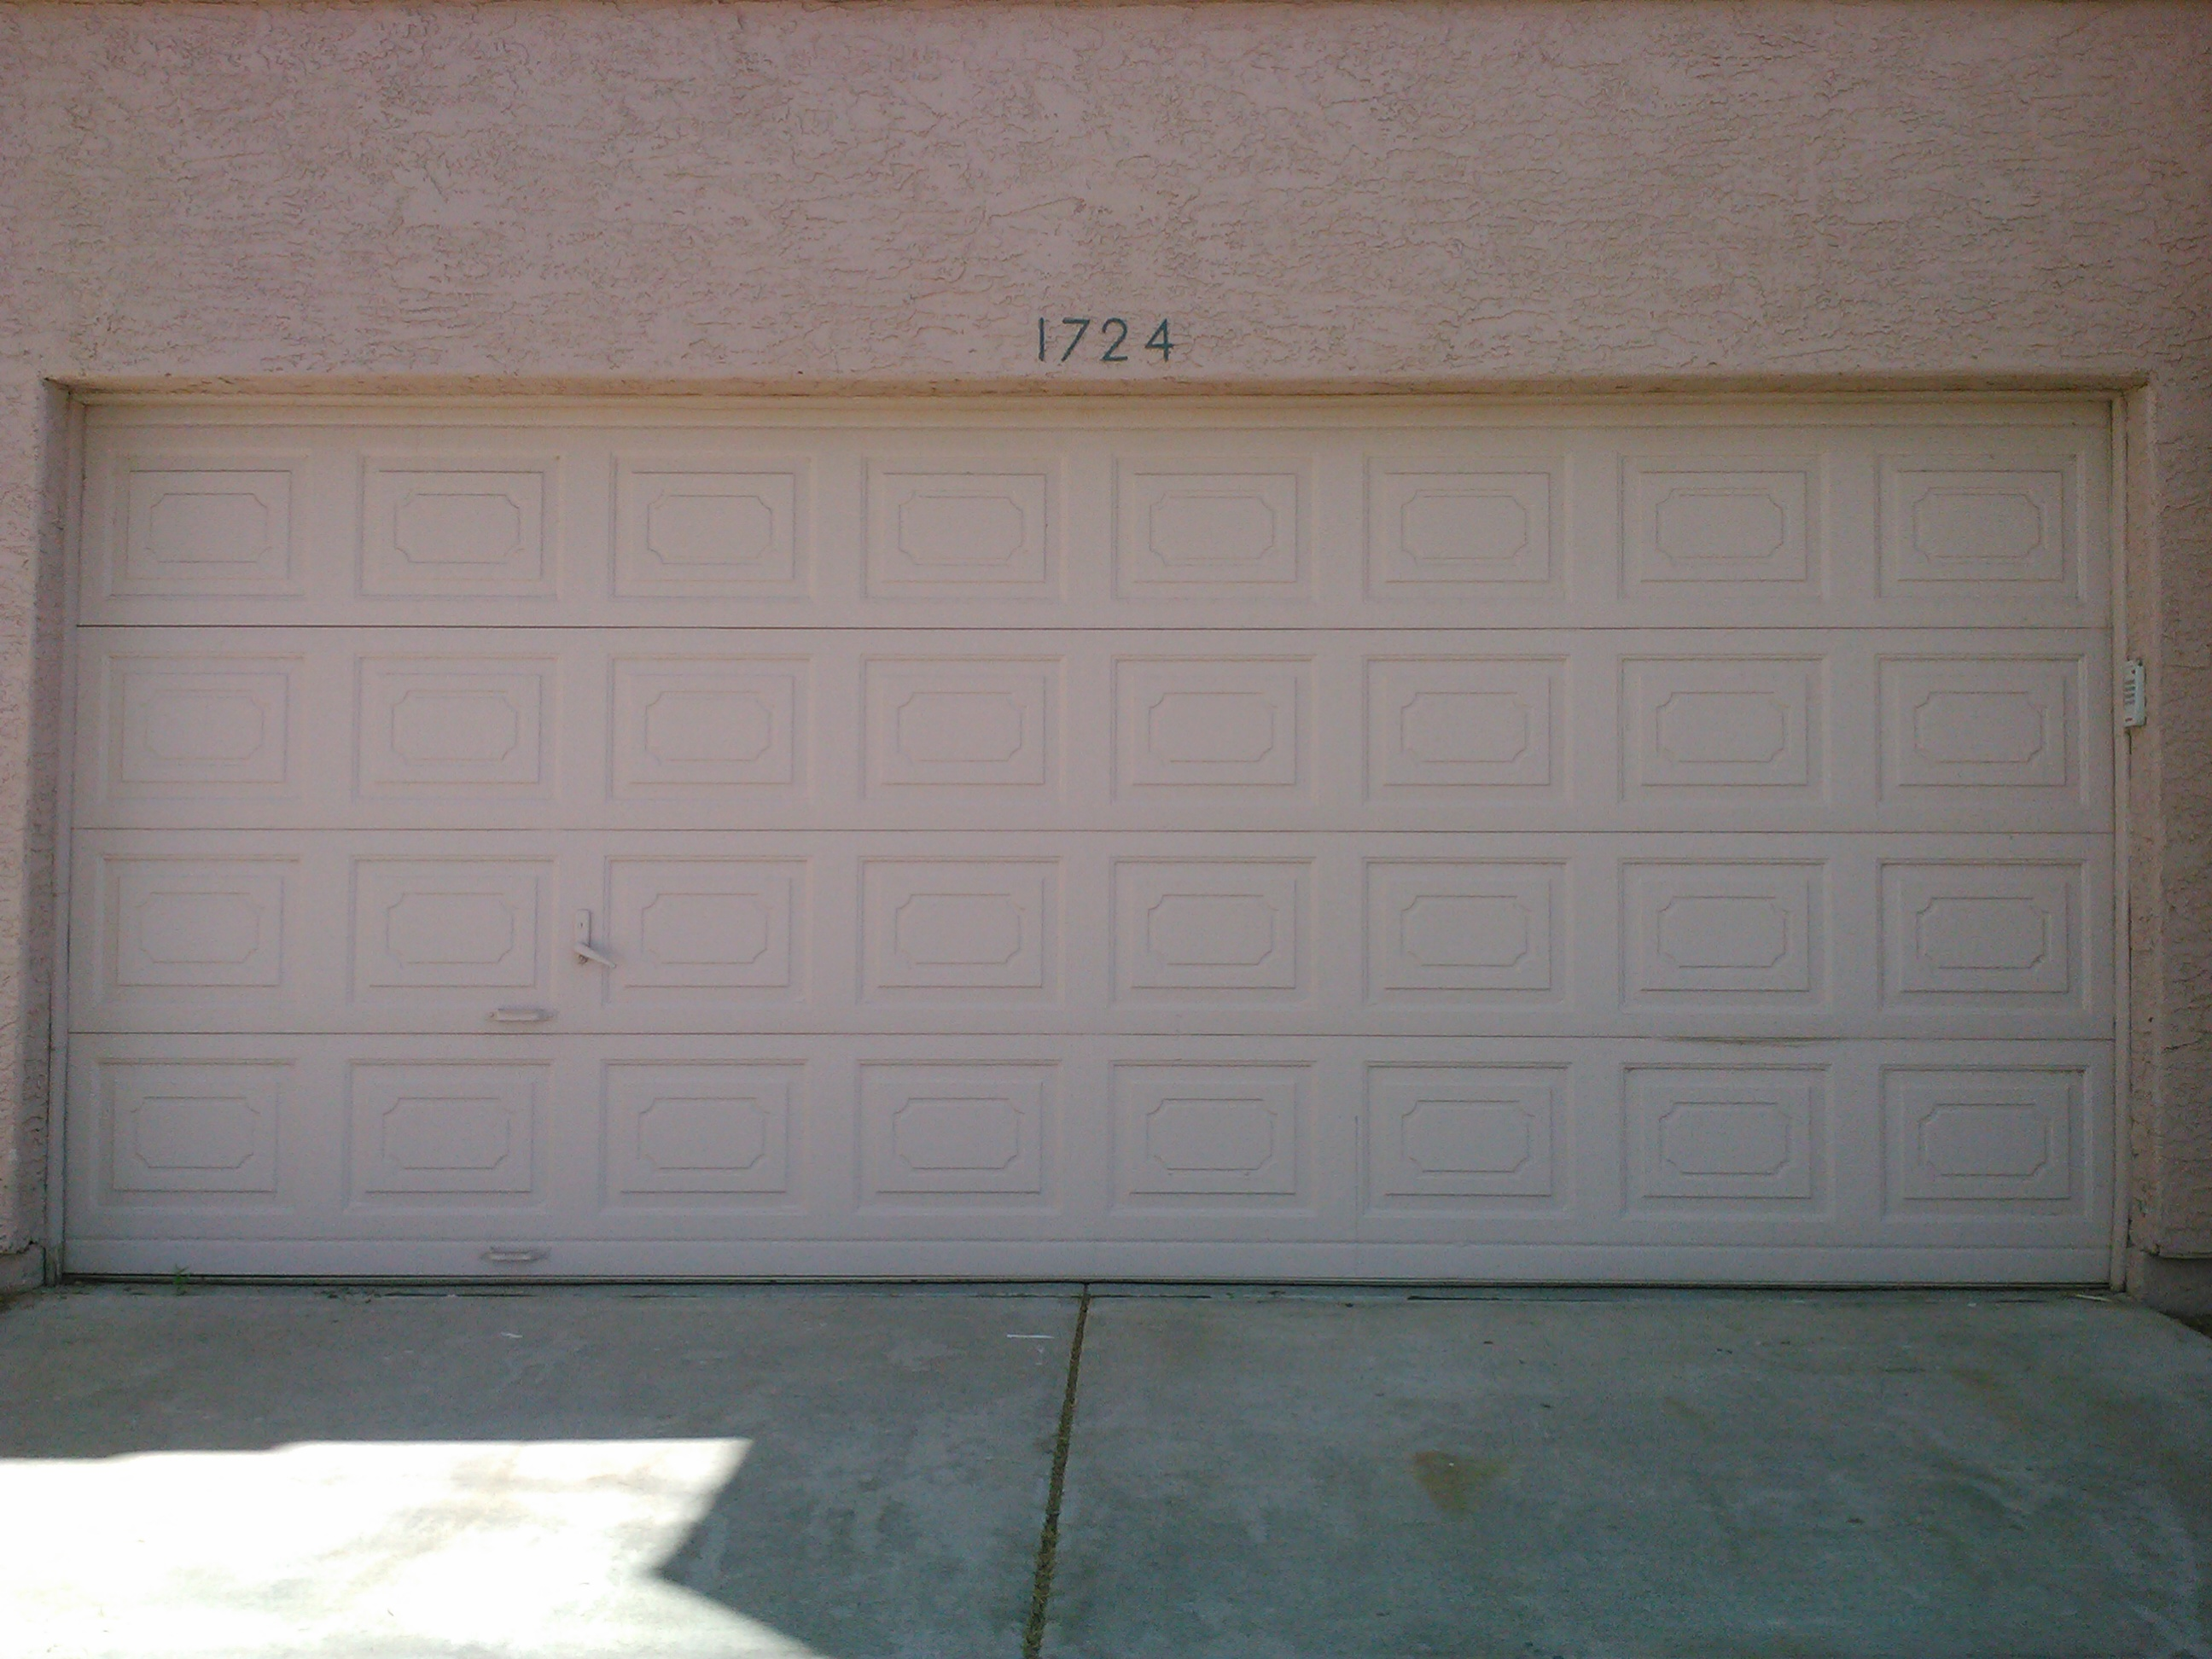 Garage door repair mesa az -  Garage Door Repair 15